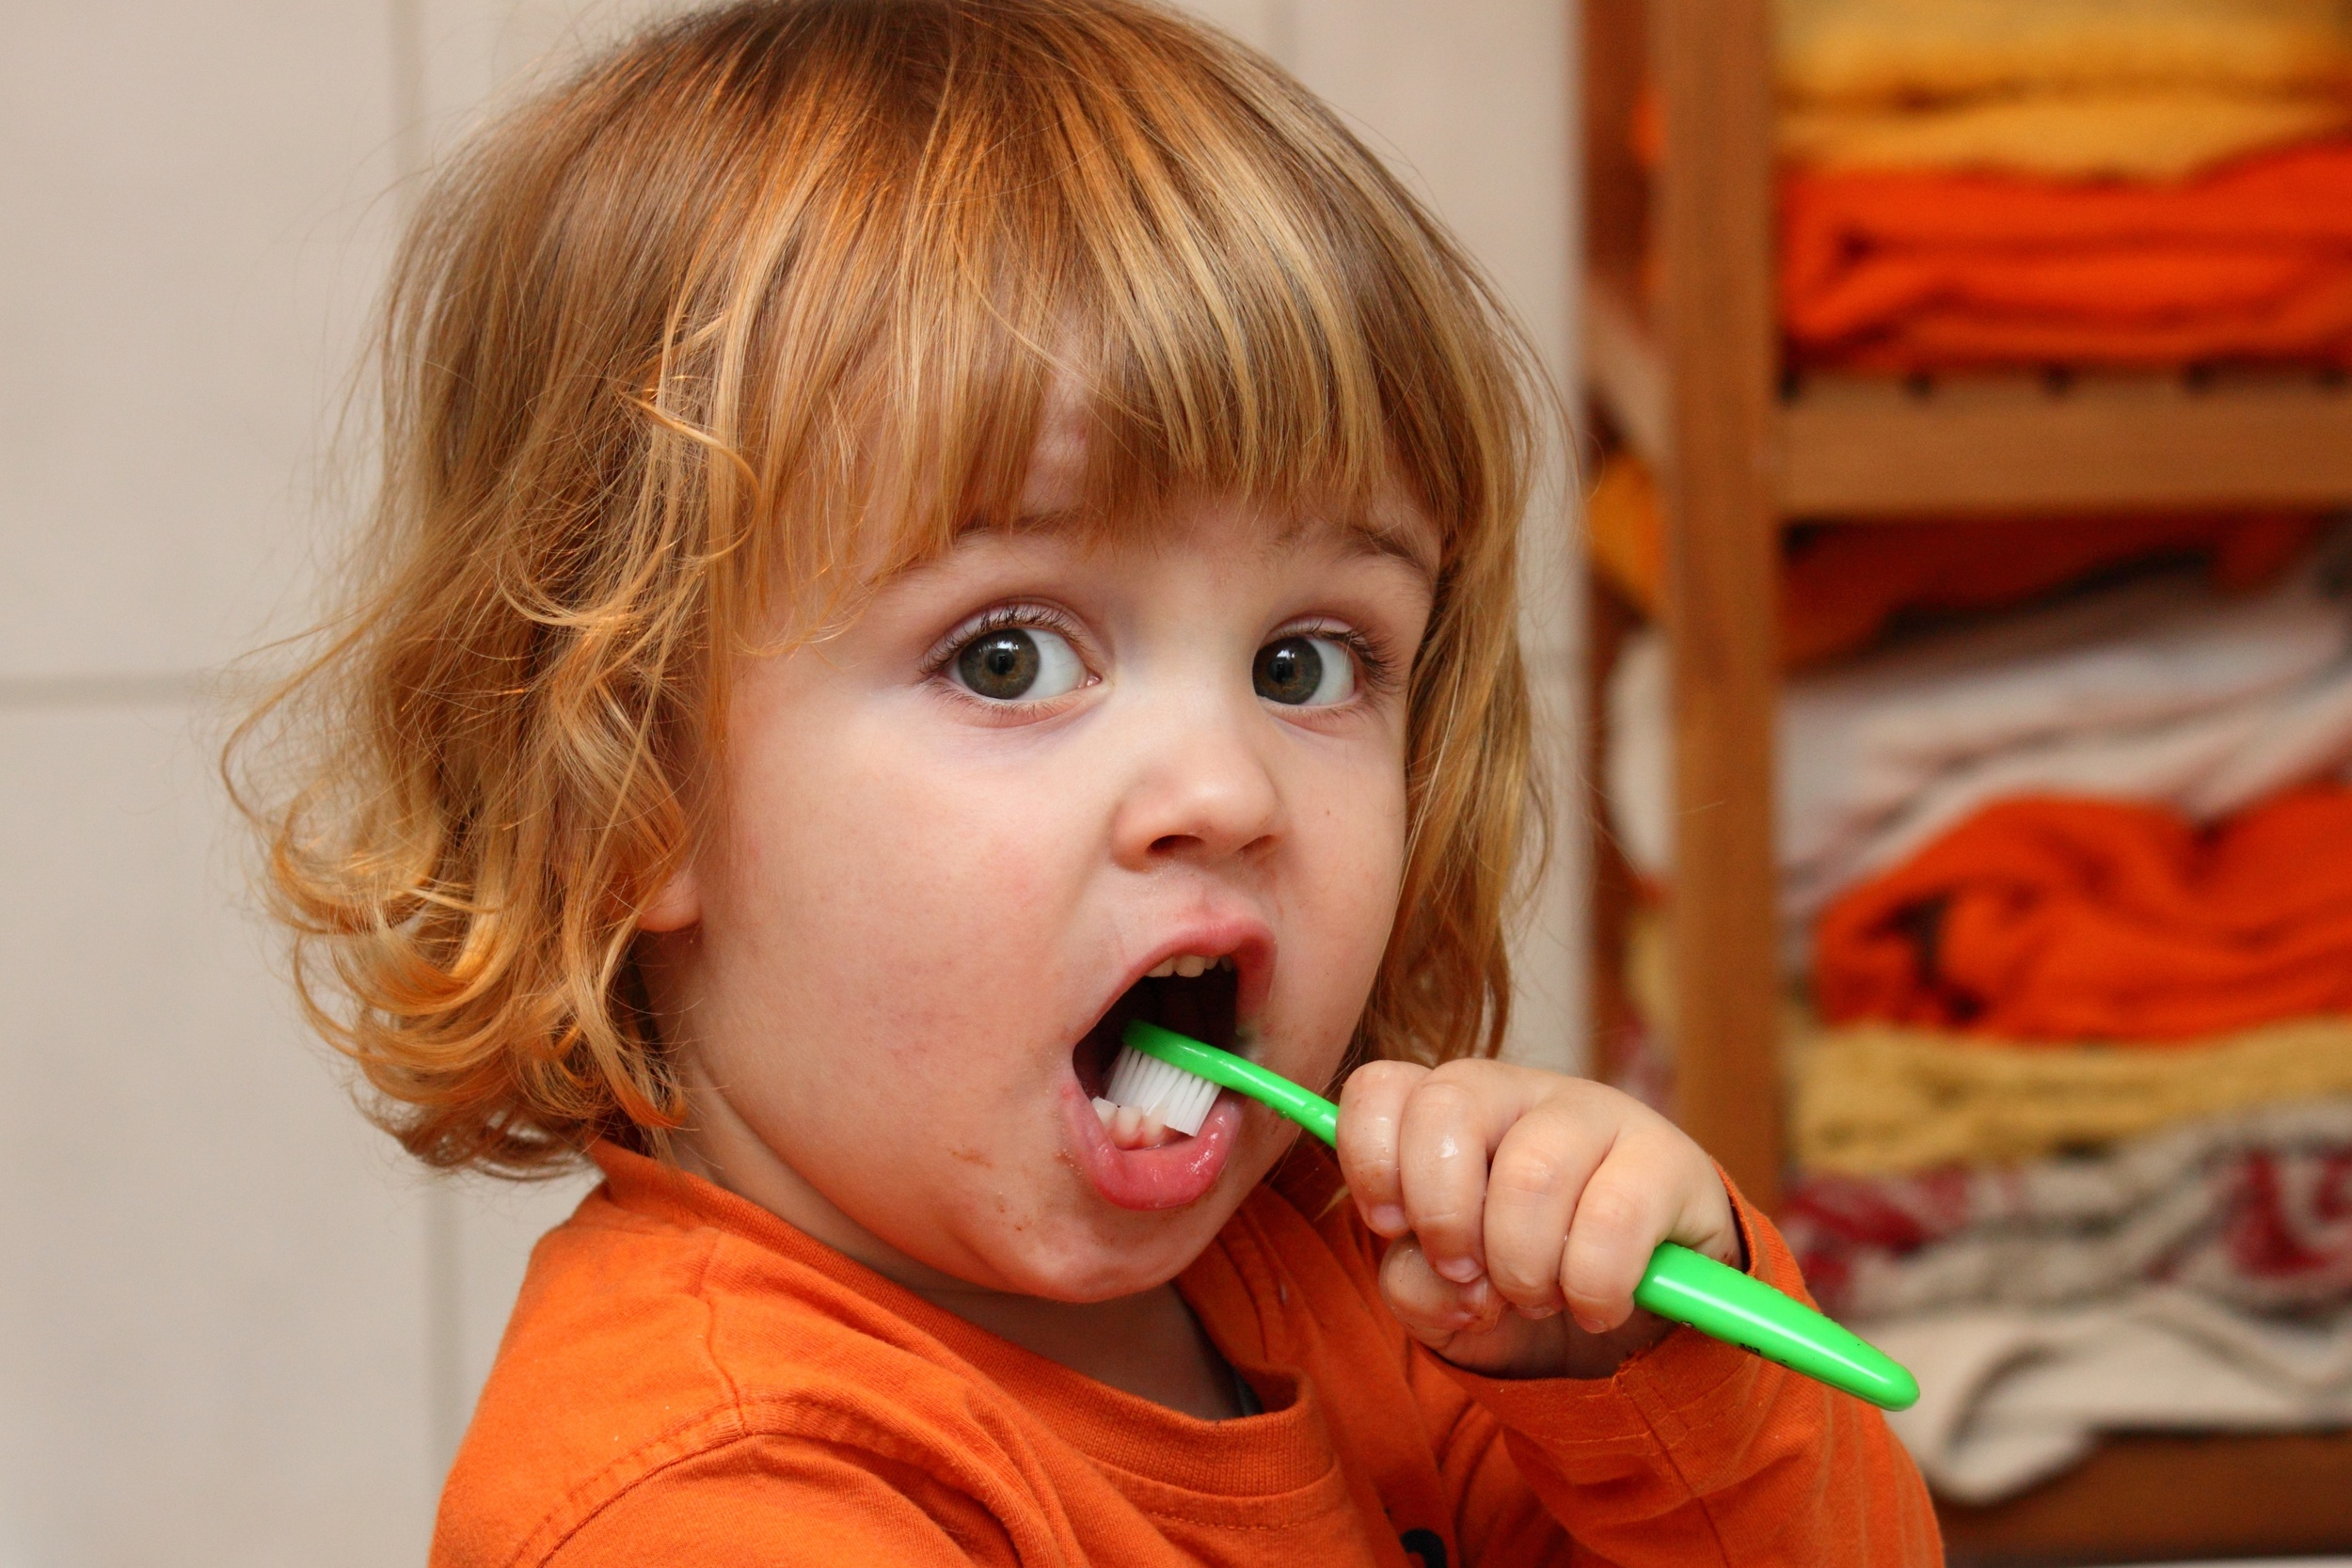 Practicing good dental health starts early.